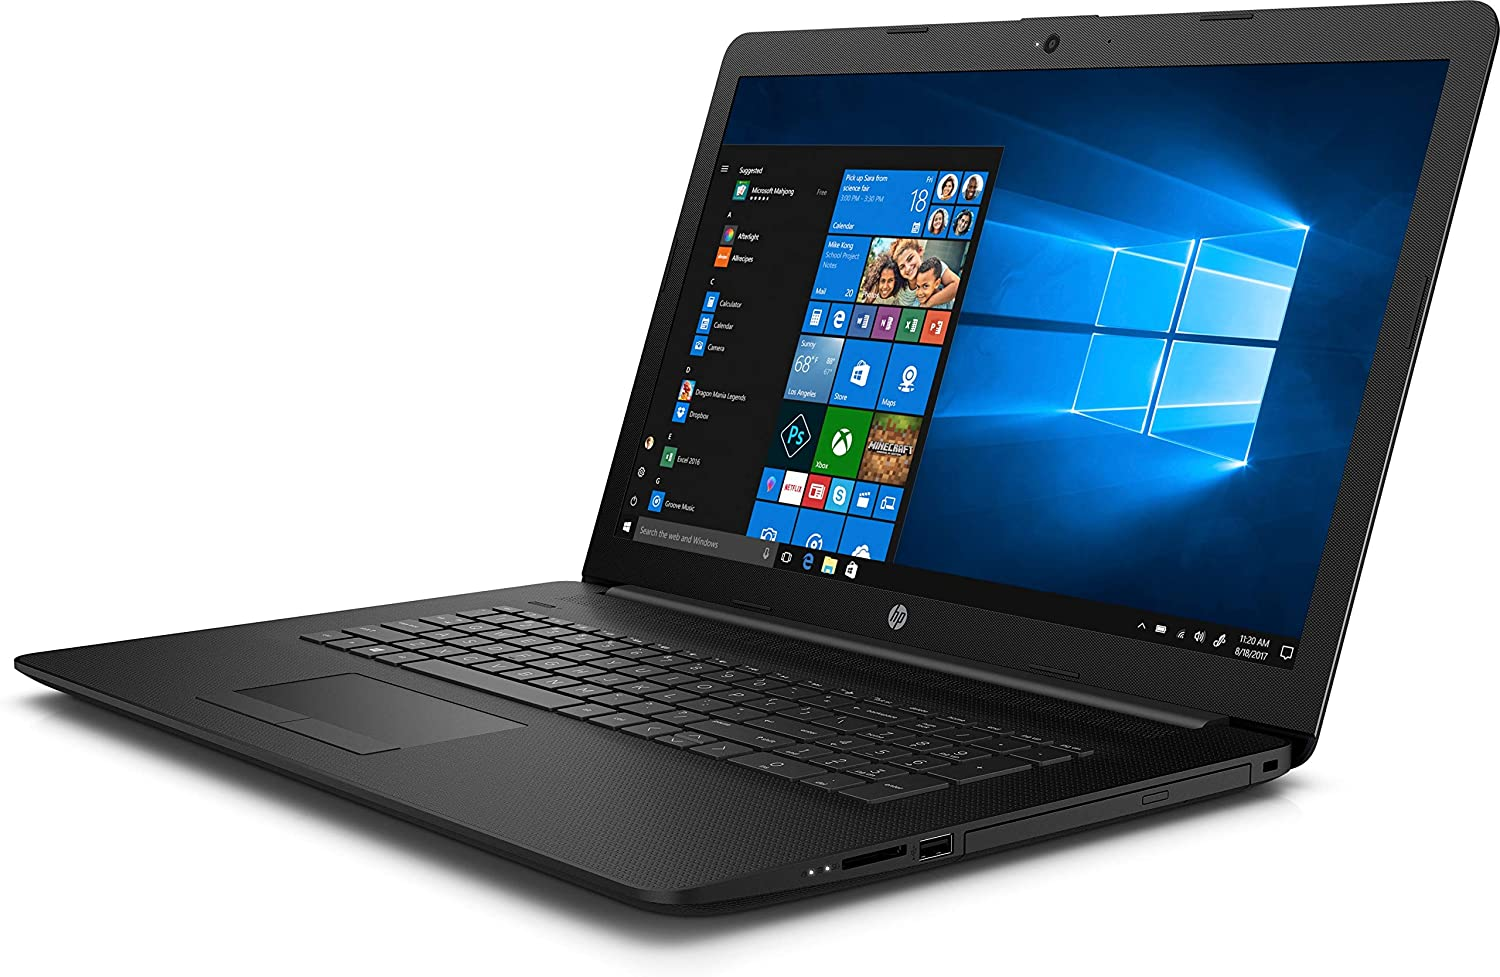 Amazon.com: HP Intel Core i5-7200U 8GB Memory 1TB Hard Drive Laptop, 17.3